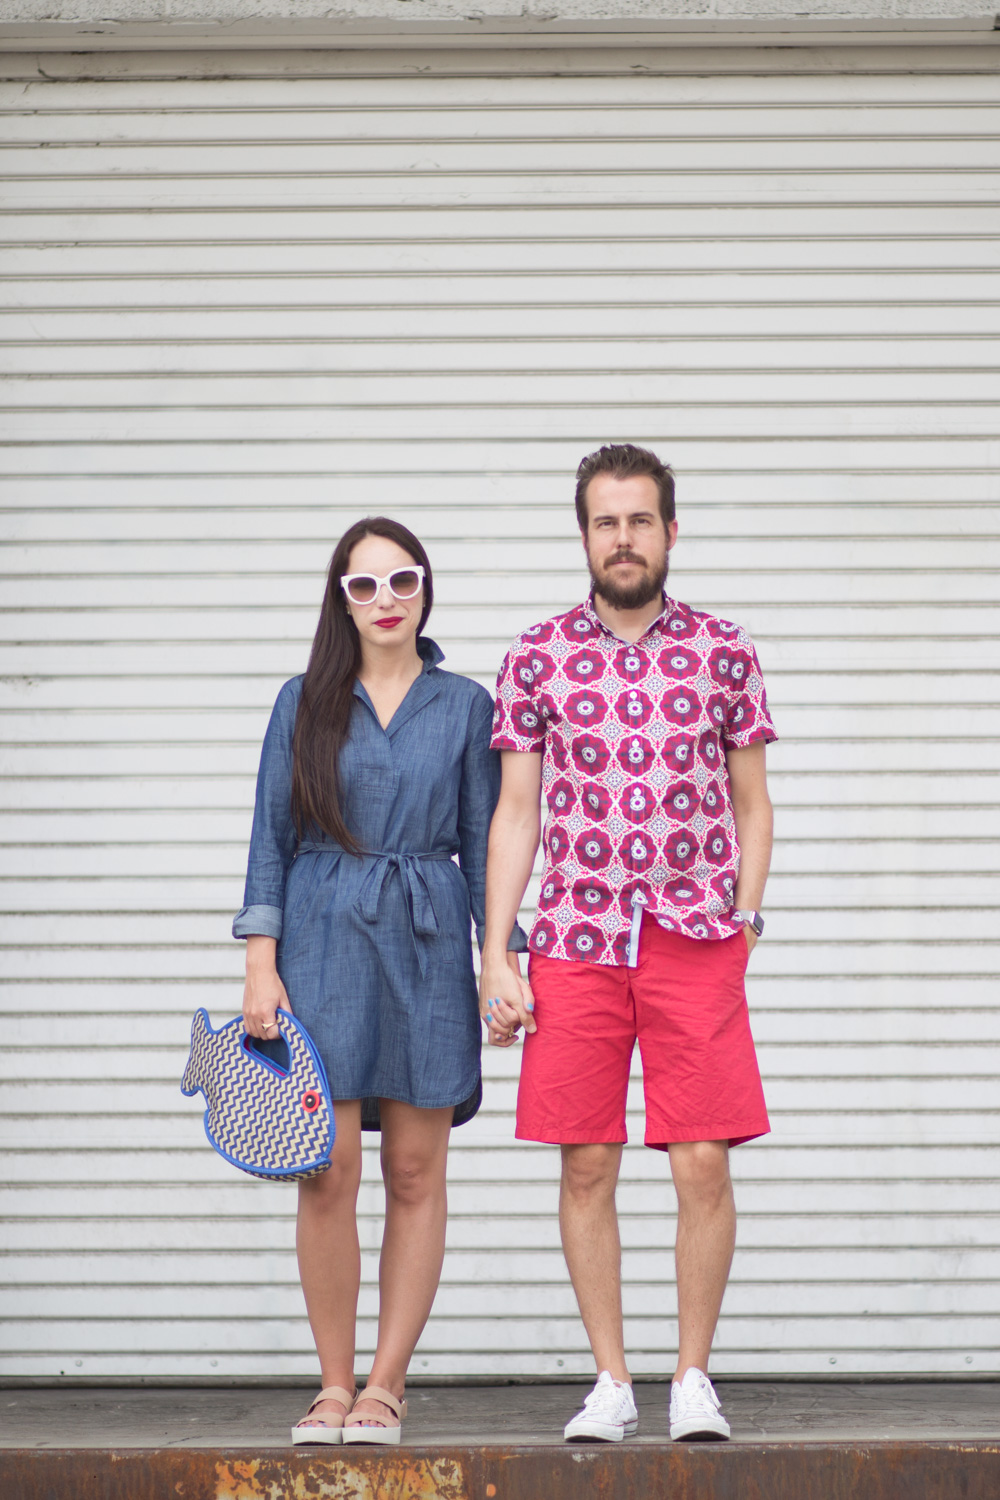 his and her style blog- kelseybang.com